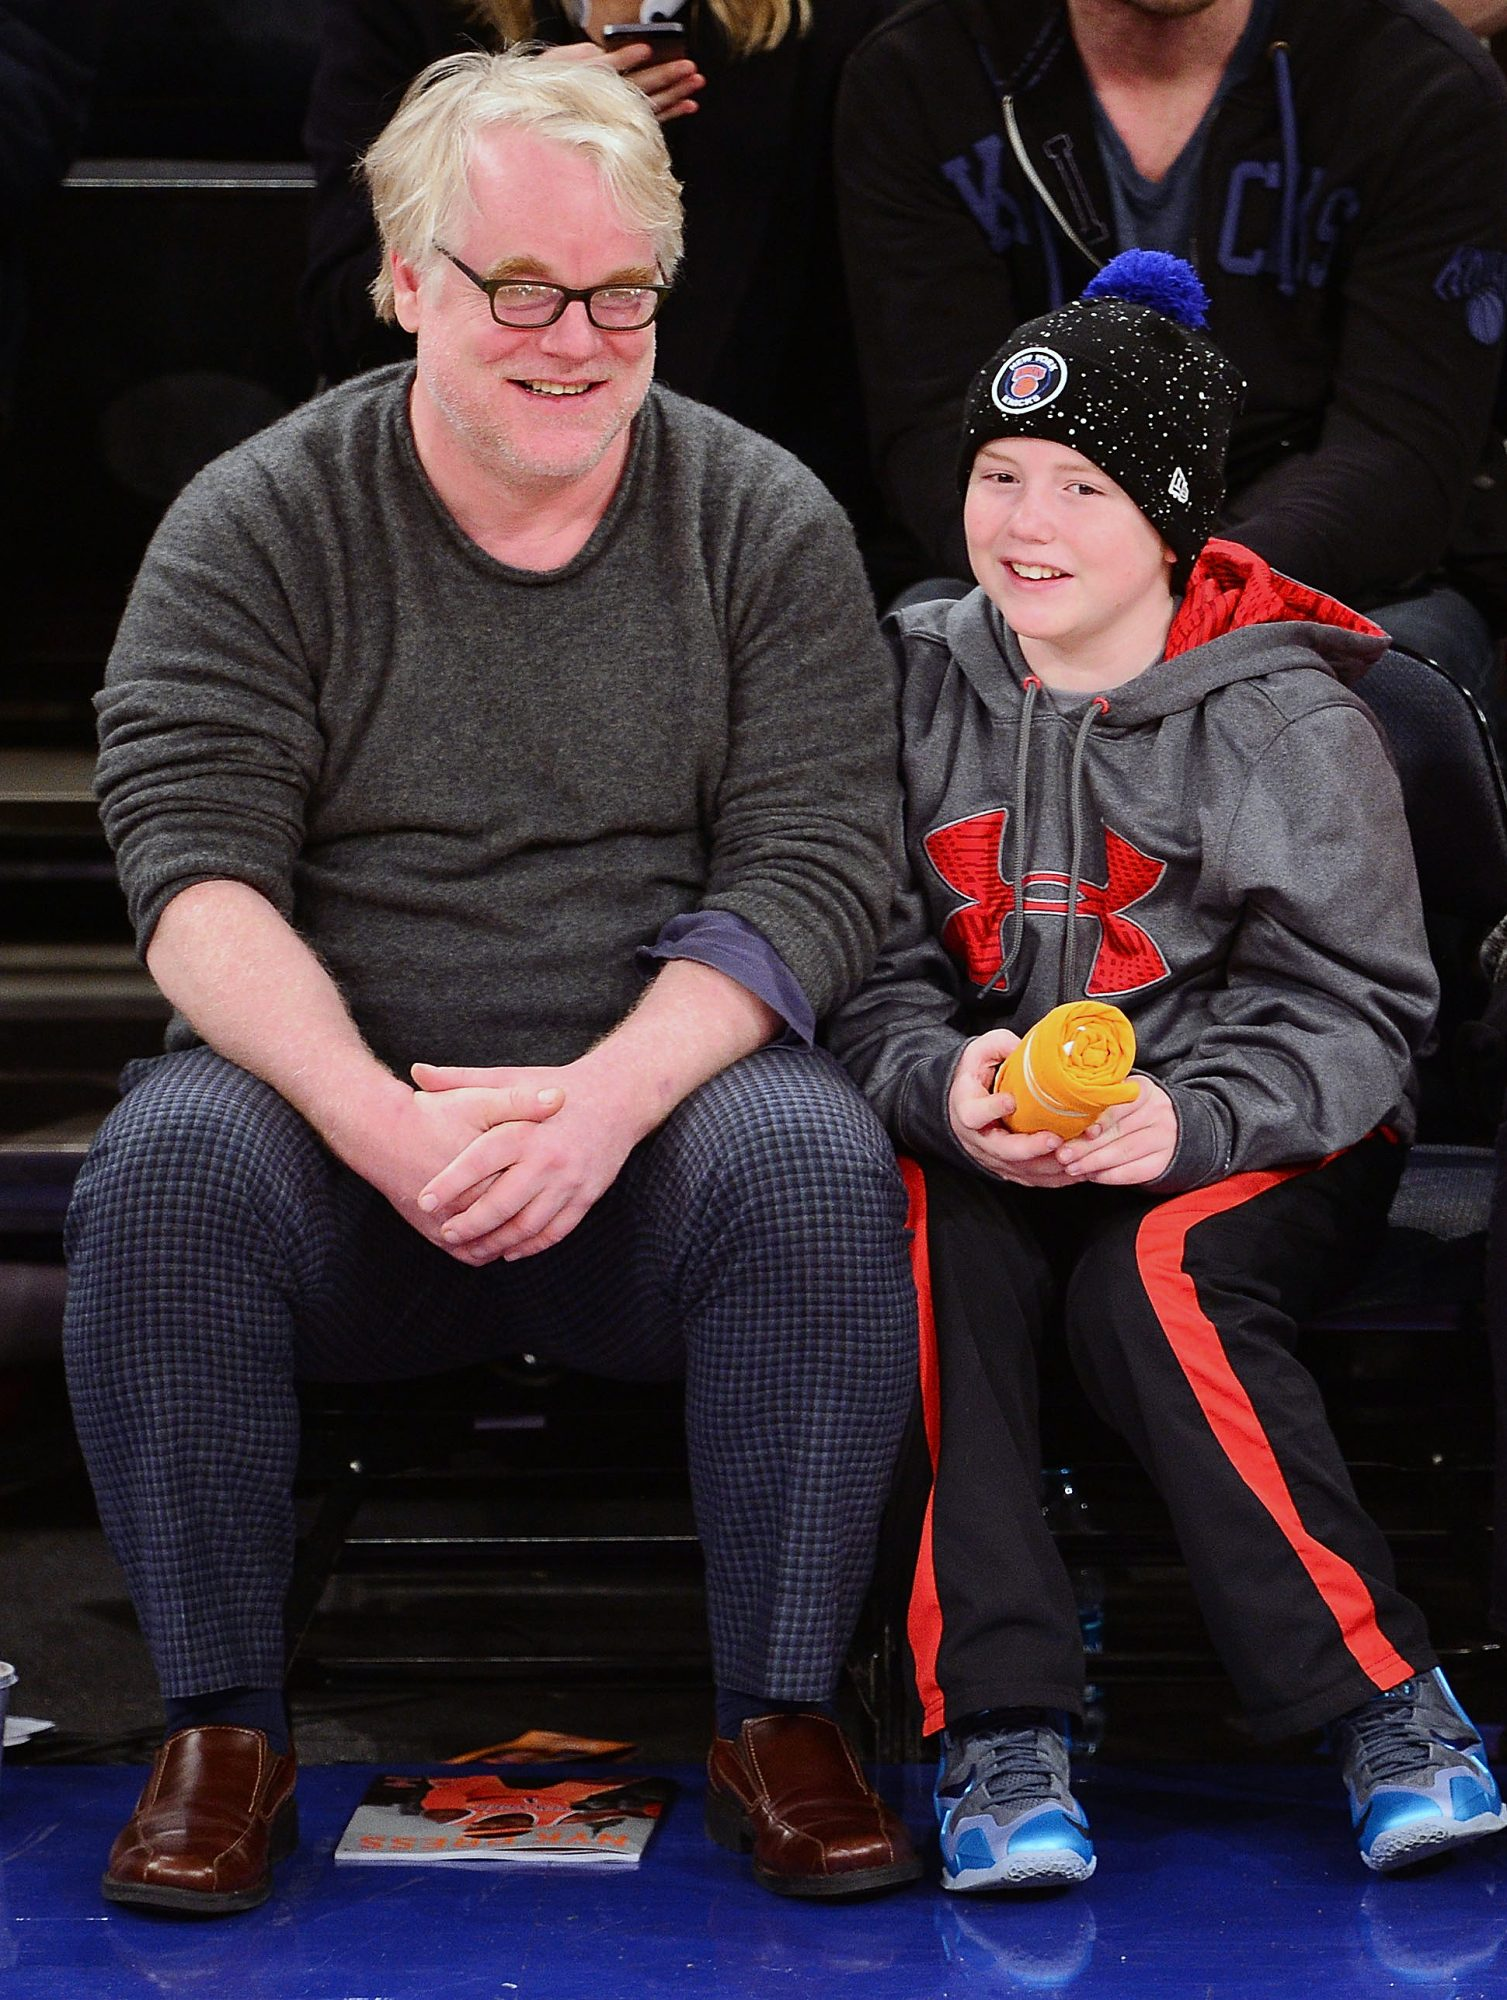 NEW YORK, NY - DECEMBER 25: Phillip Seymour Hoffman and Cooper Alexander Hoffman attend the Oklahoma City Thunder vs New York Knicks game at Madison Square Garden on December 25, 2013 in New York City. (Photo by James Devaney/WireImage)